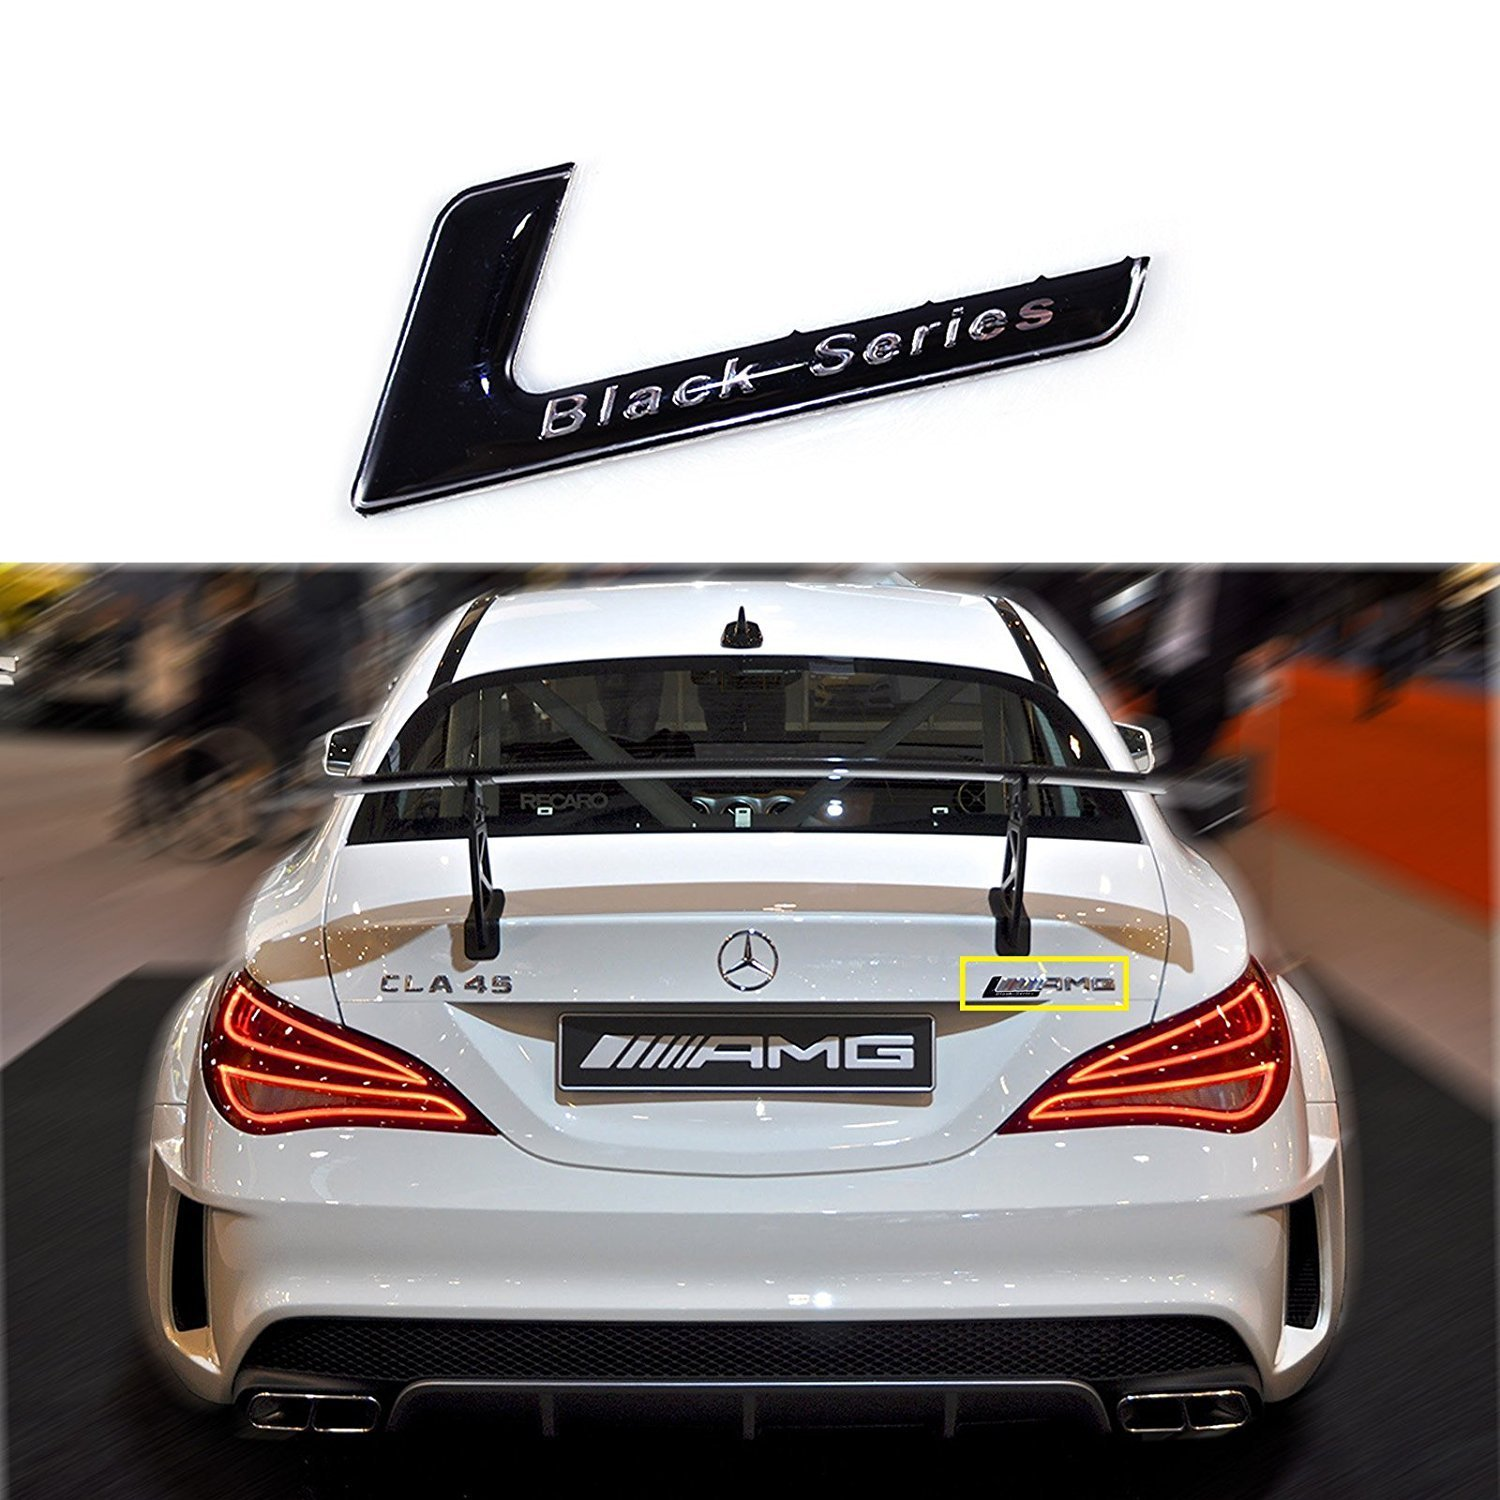 1x Black Series Badge Car Rear Trunk Body Emblem Black Sticker For Mercedes Benz AMG SLK55 CLK63 SL65 C63 SLS Classic Xotic Tech Direct